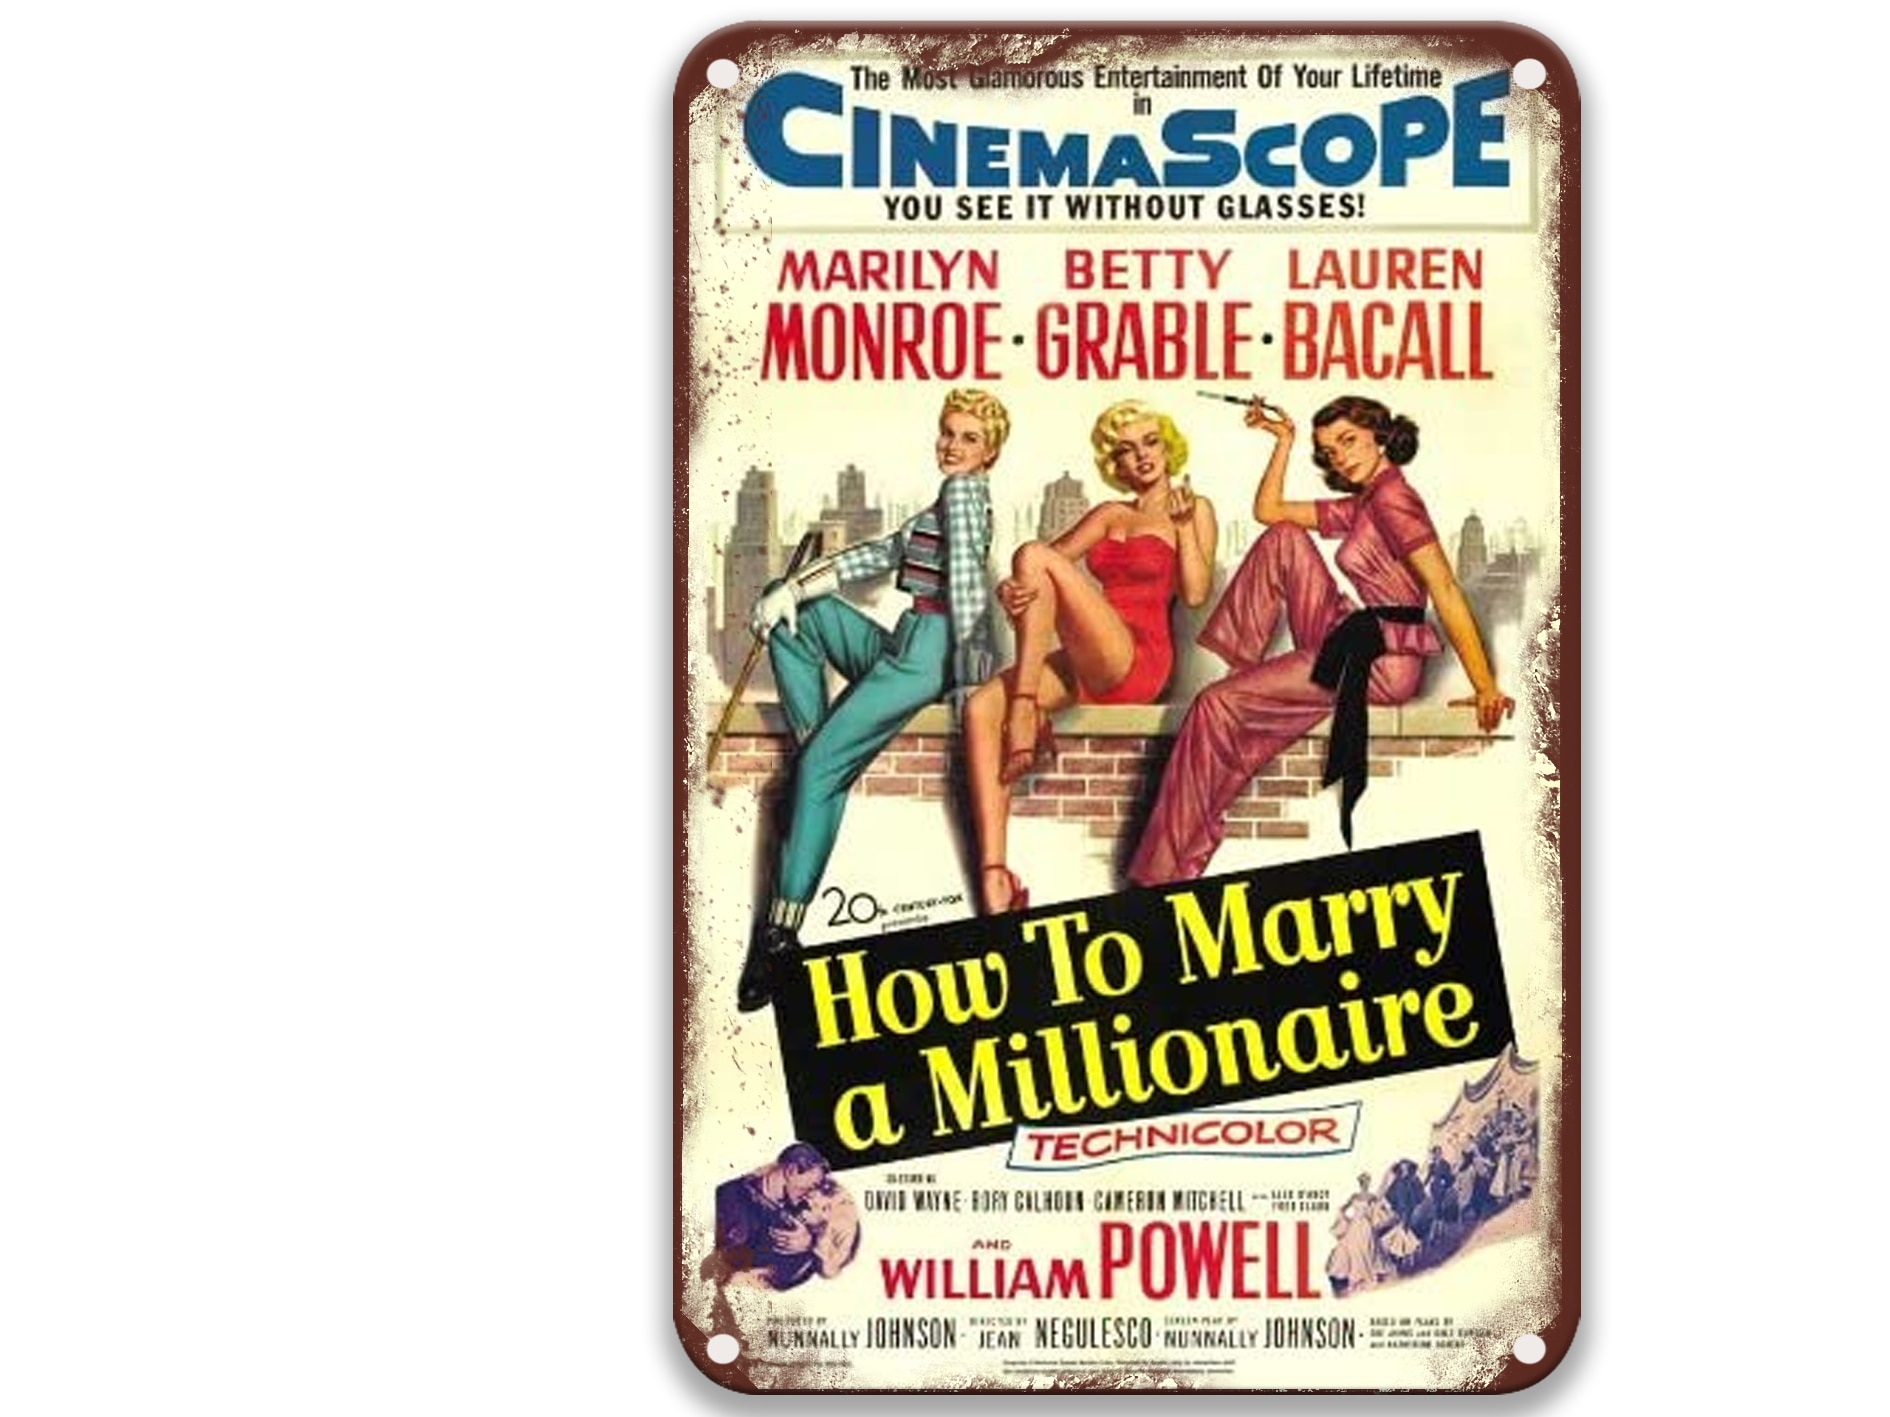 How To Marry A Millionaire Modern Metal Tin Signs Movies Living Room Decoration for Room 8x12 Inches